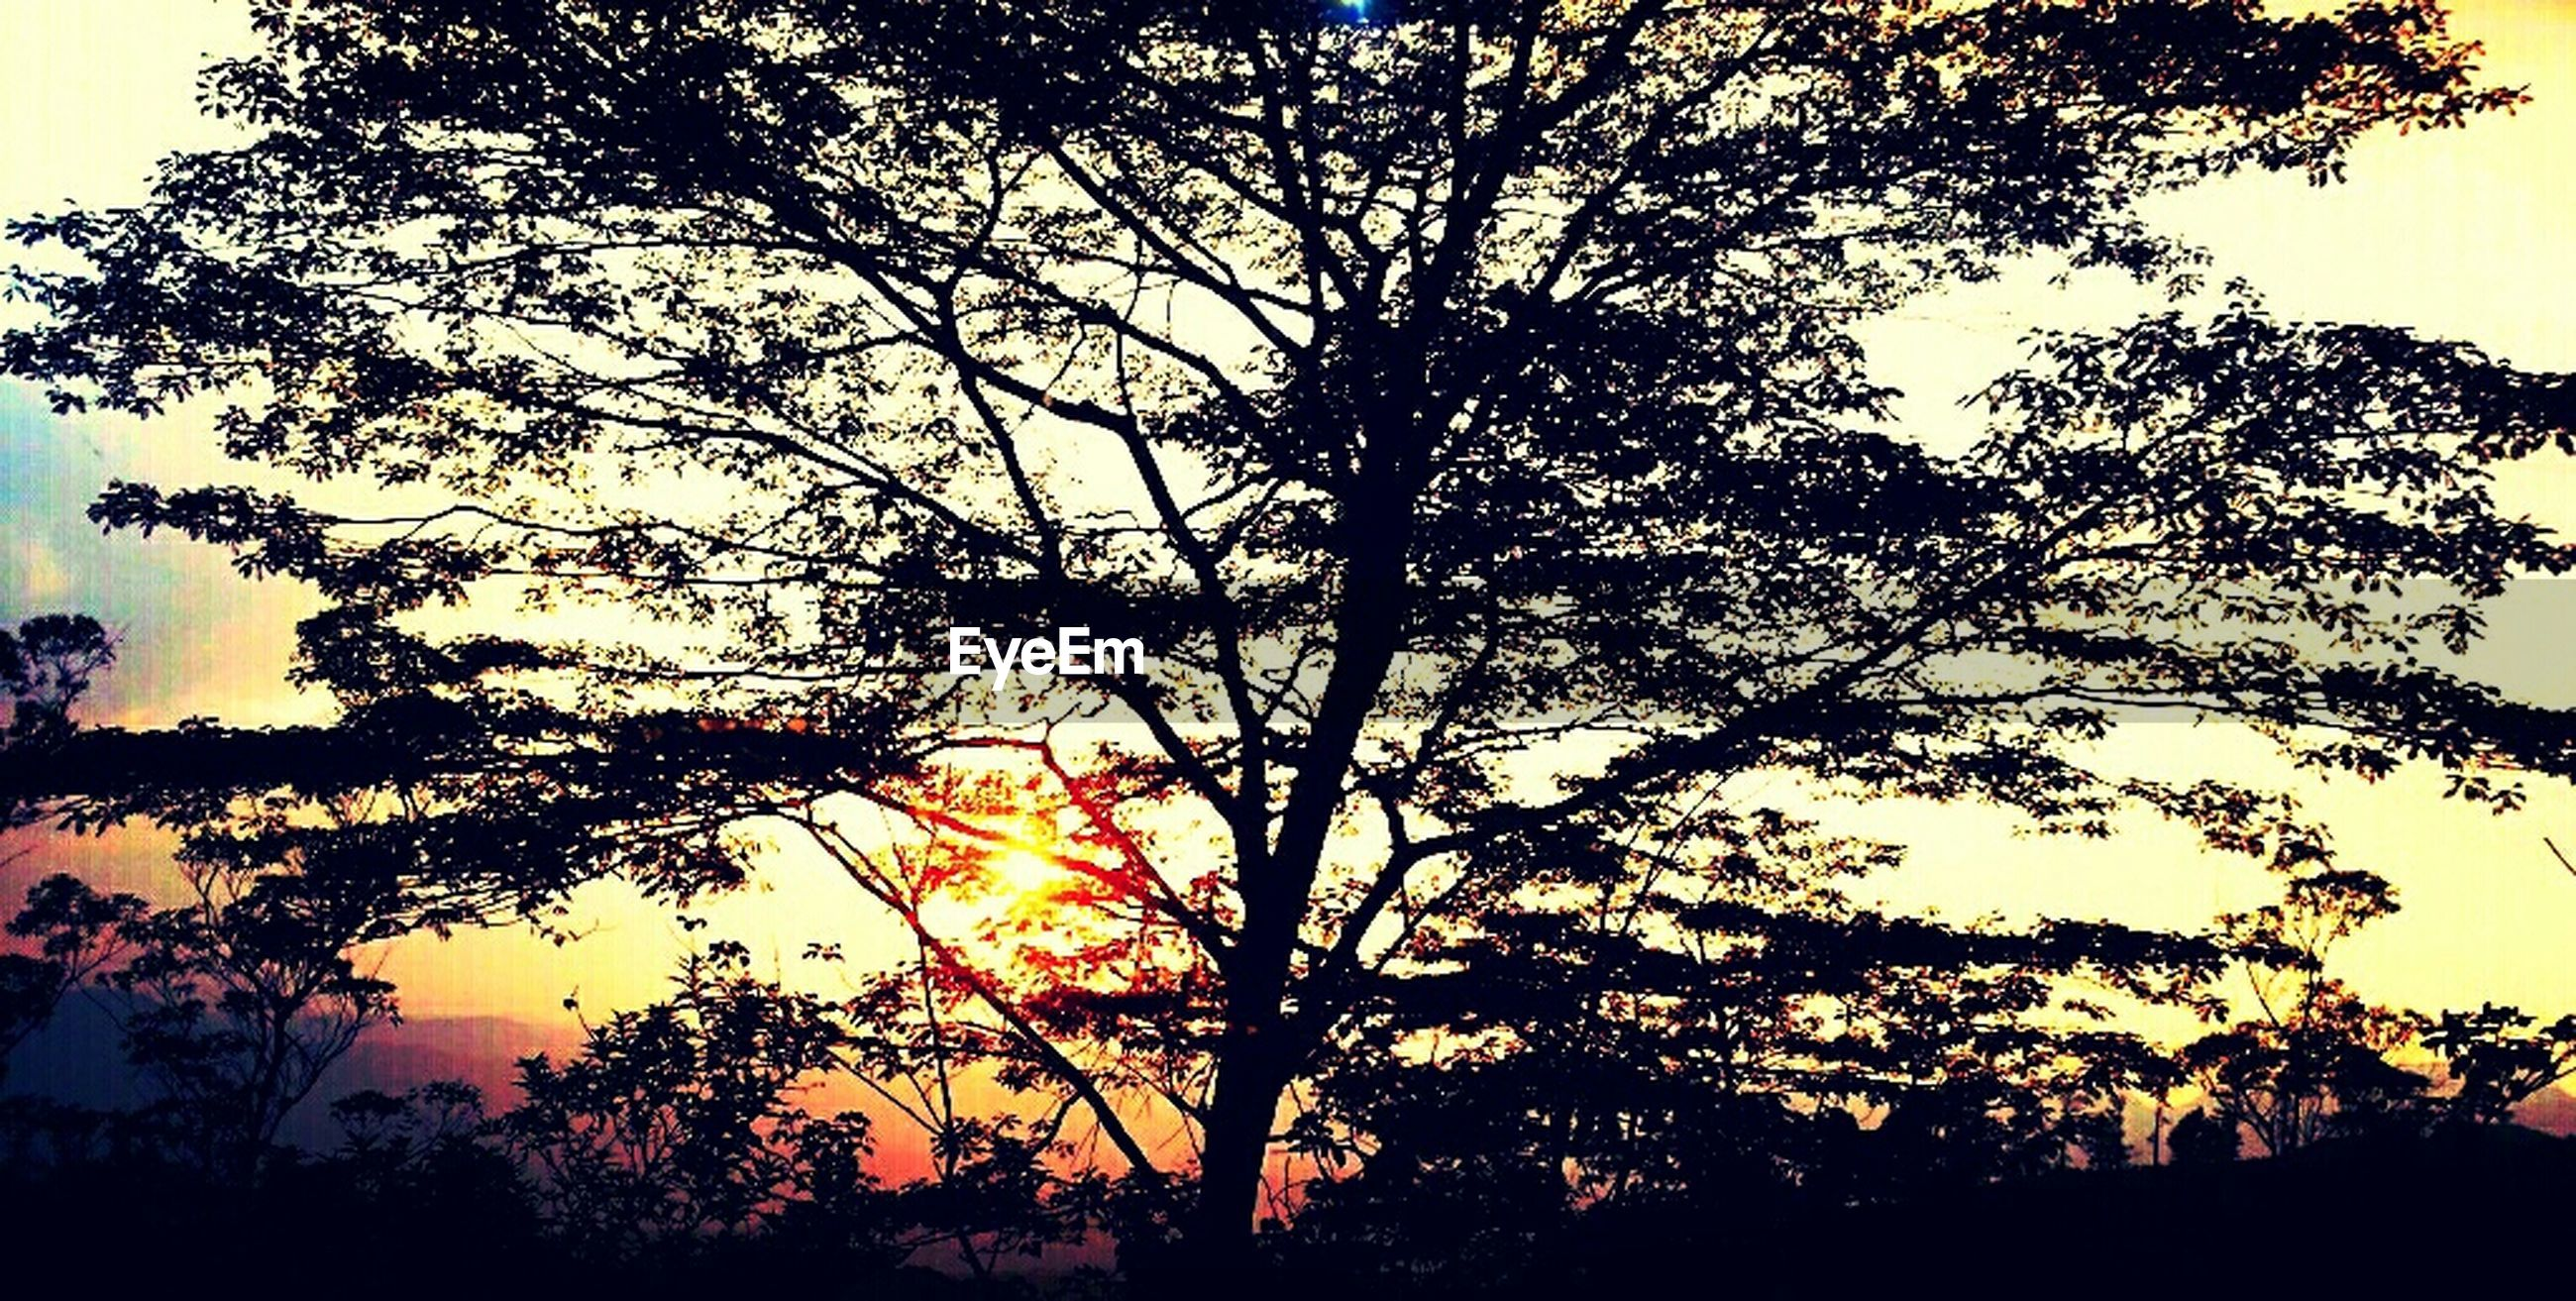 silhouette, sunset, tree, tranquility, beauty in nature, scenics, tranquil scene, sky, branch, nature, growth, low angle view, orange color, idyllic, sun, outdoors, no people, outline, sunlight, back lit